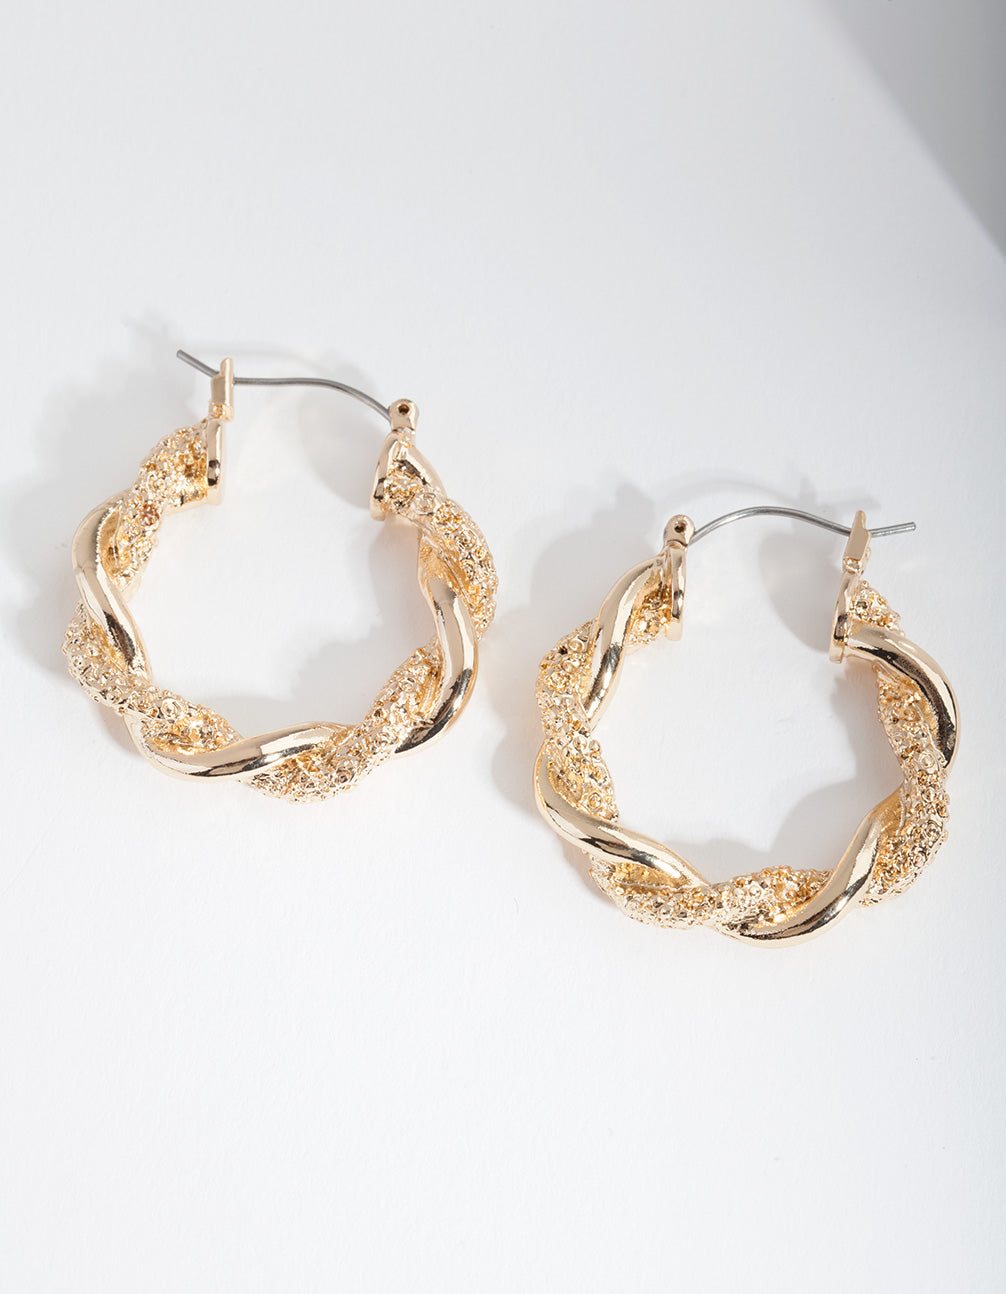 Gold Textured Twist Hoop Earrings